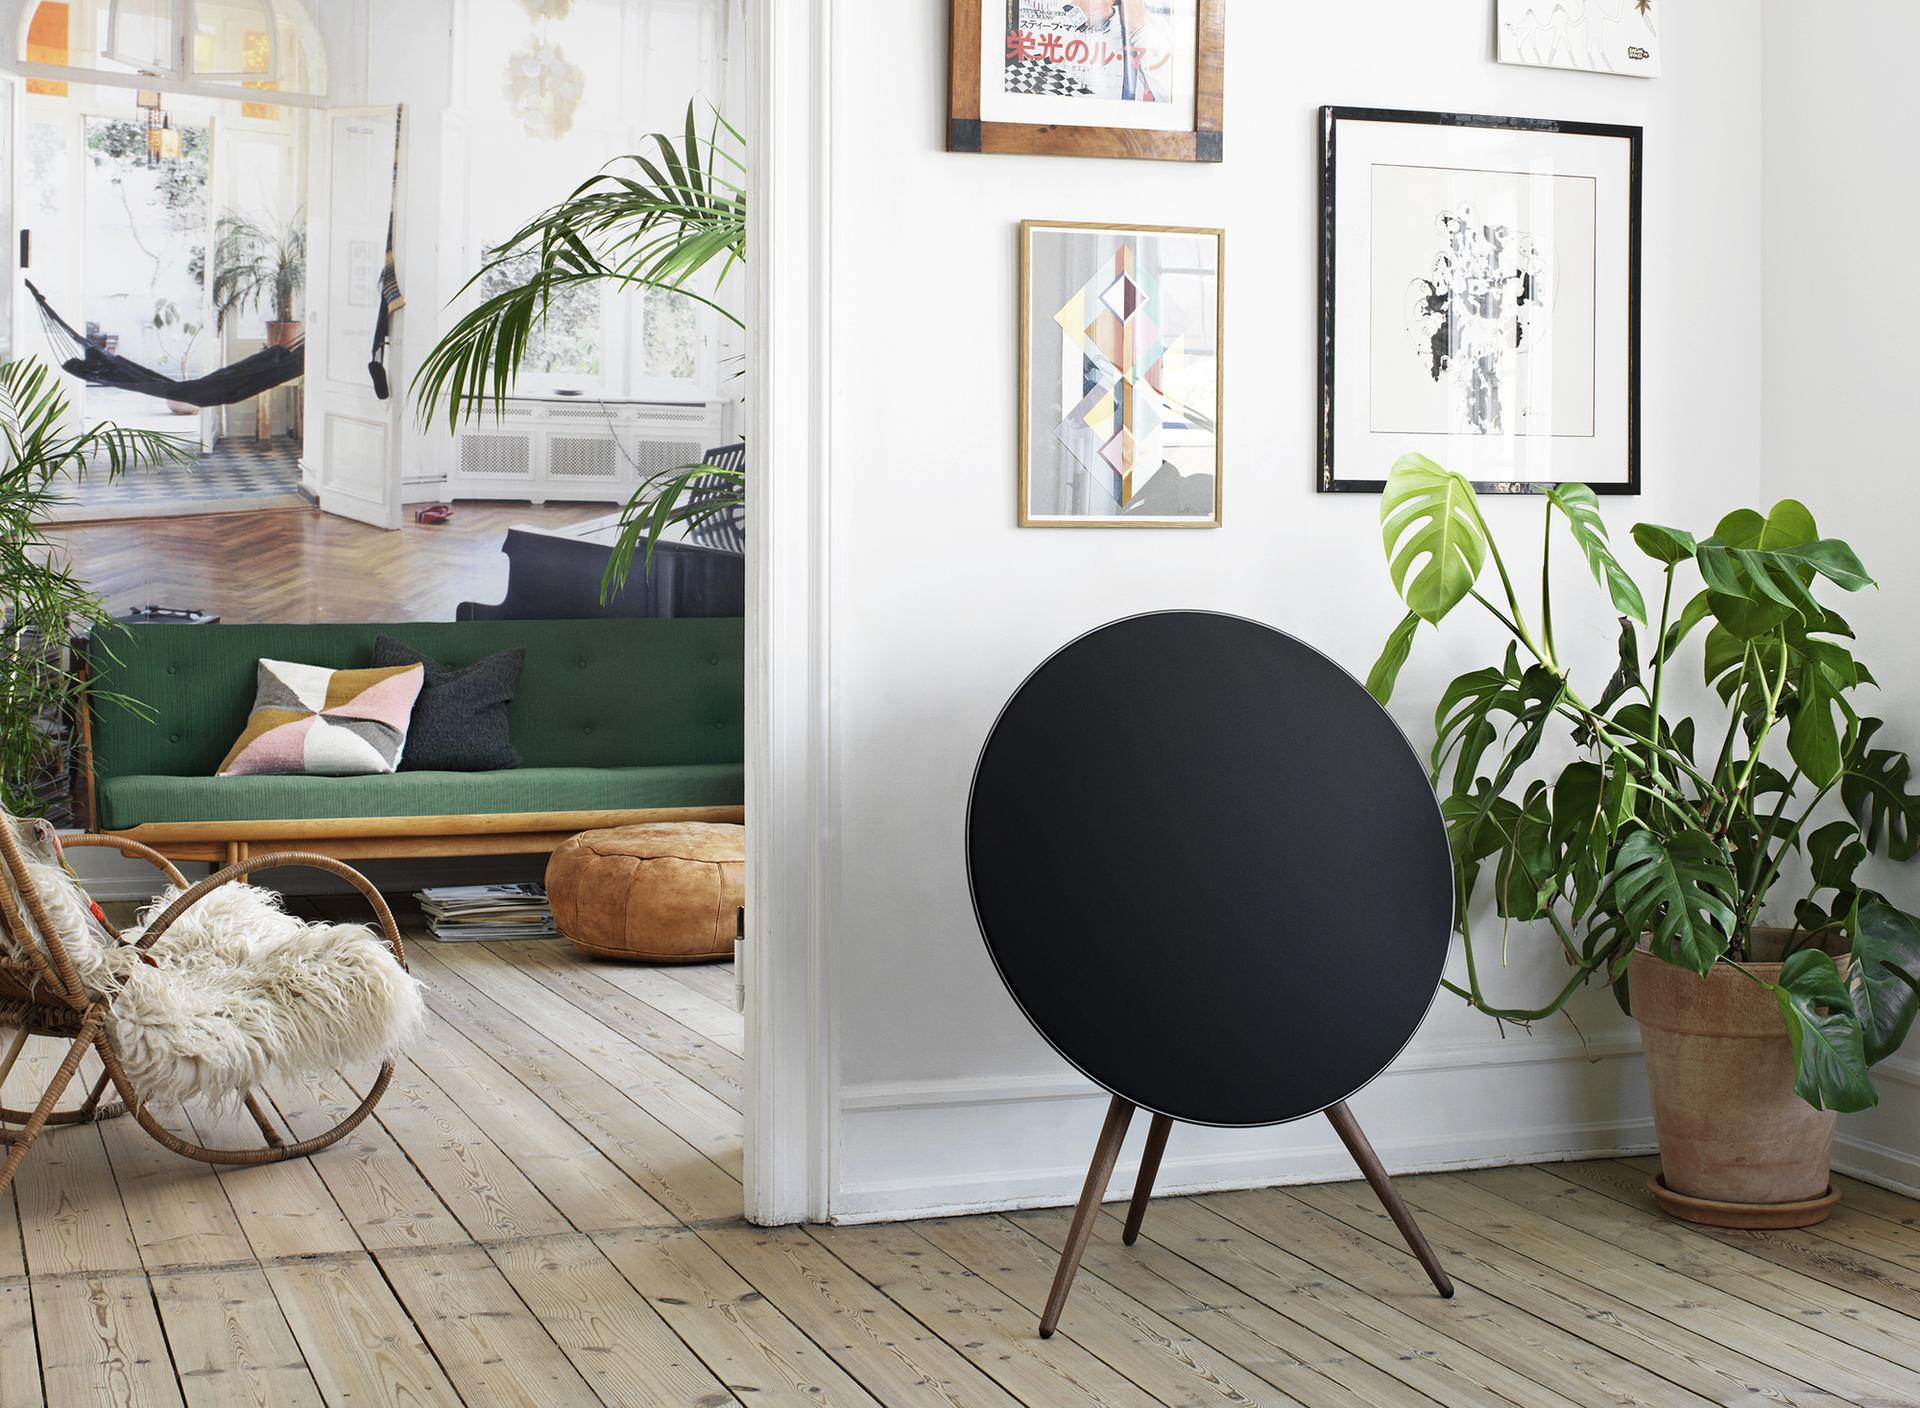 Beoplay A9 in living room